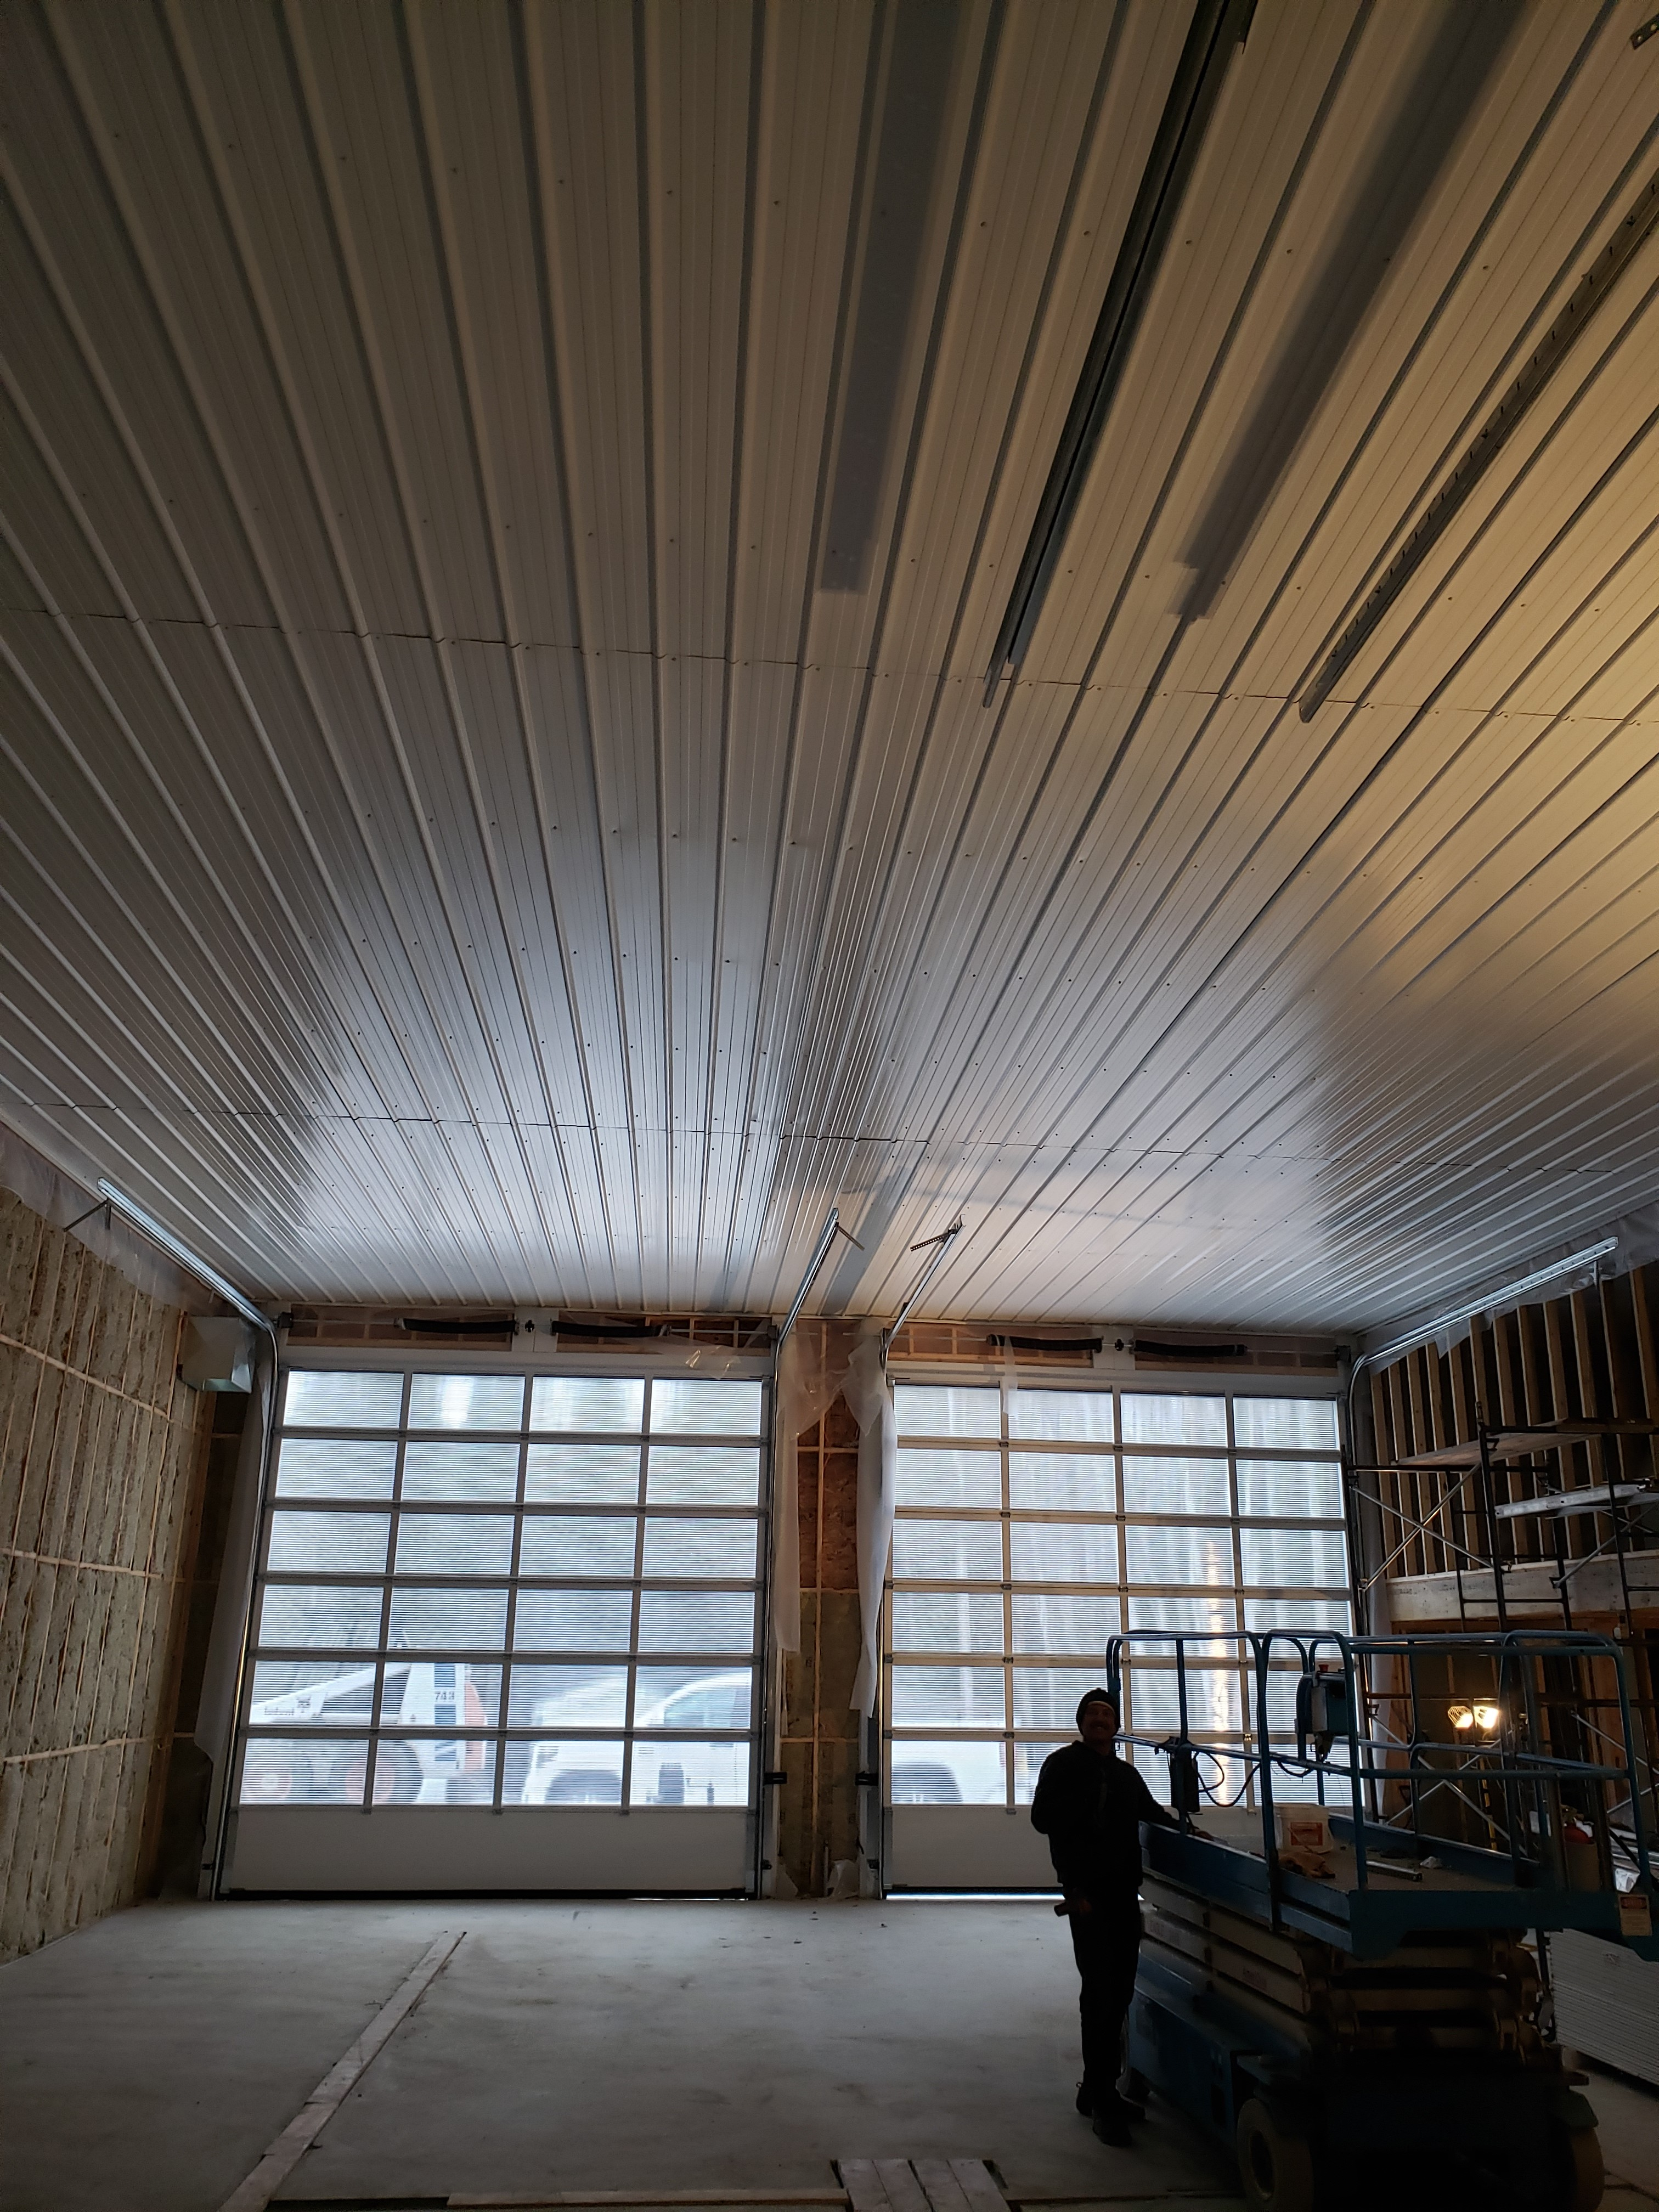 Groomer shed ceiling pic 3